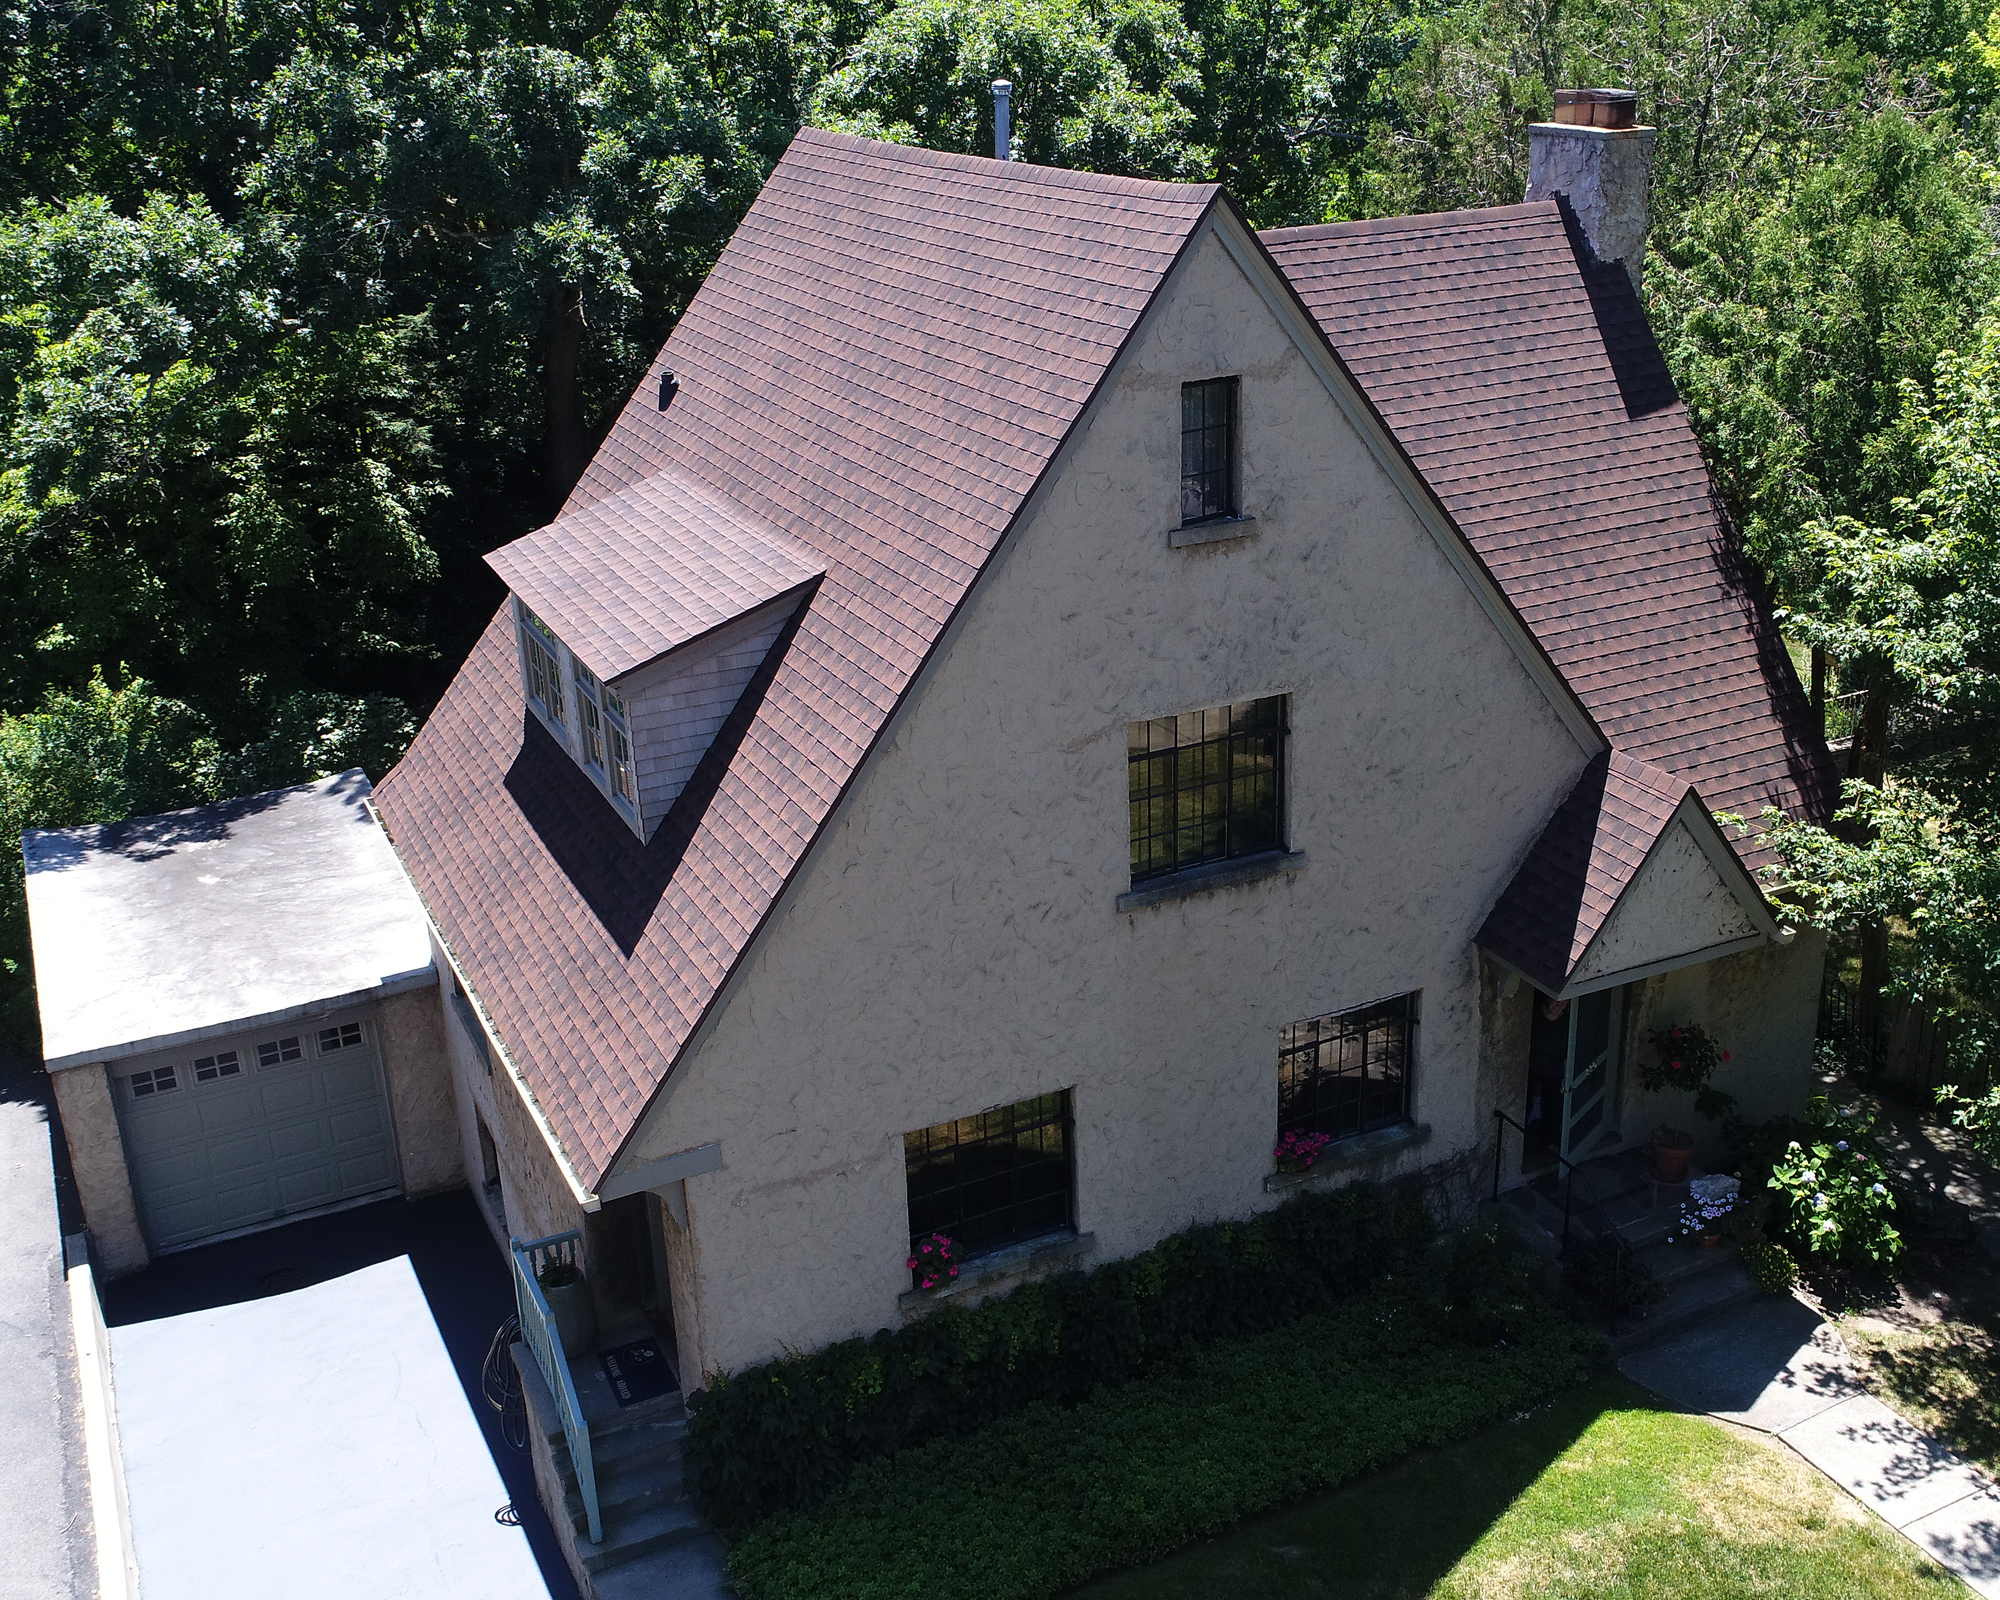 GAF Hickory shingles, steep roof, drone image, wicker gutters, A frame